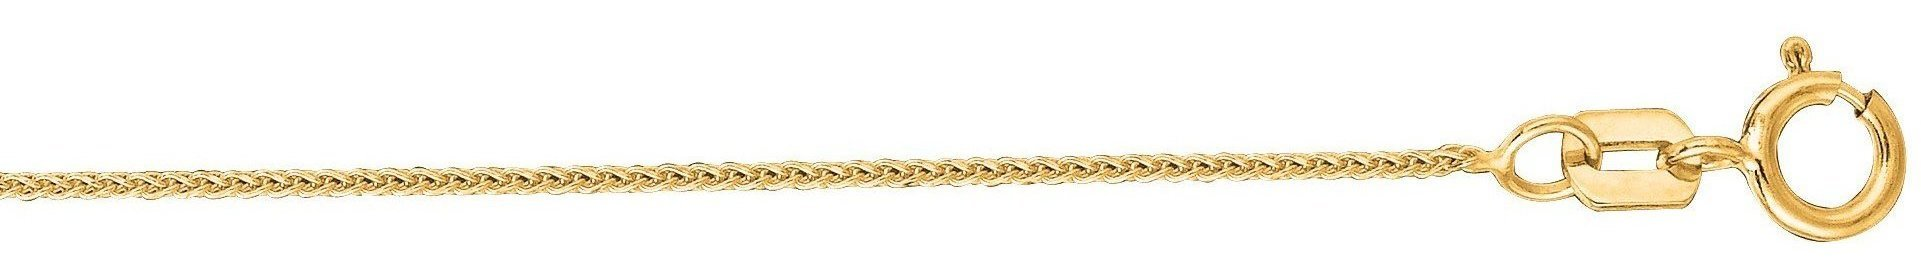 "20"" 14K Yellow Gold 0.6mm (0.02"") Polished Round Diamond Cut Wheat Chain w/ Spring Ring Clasp"